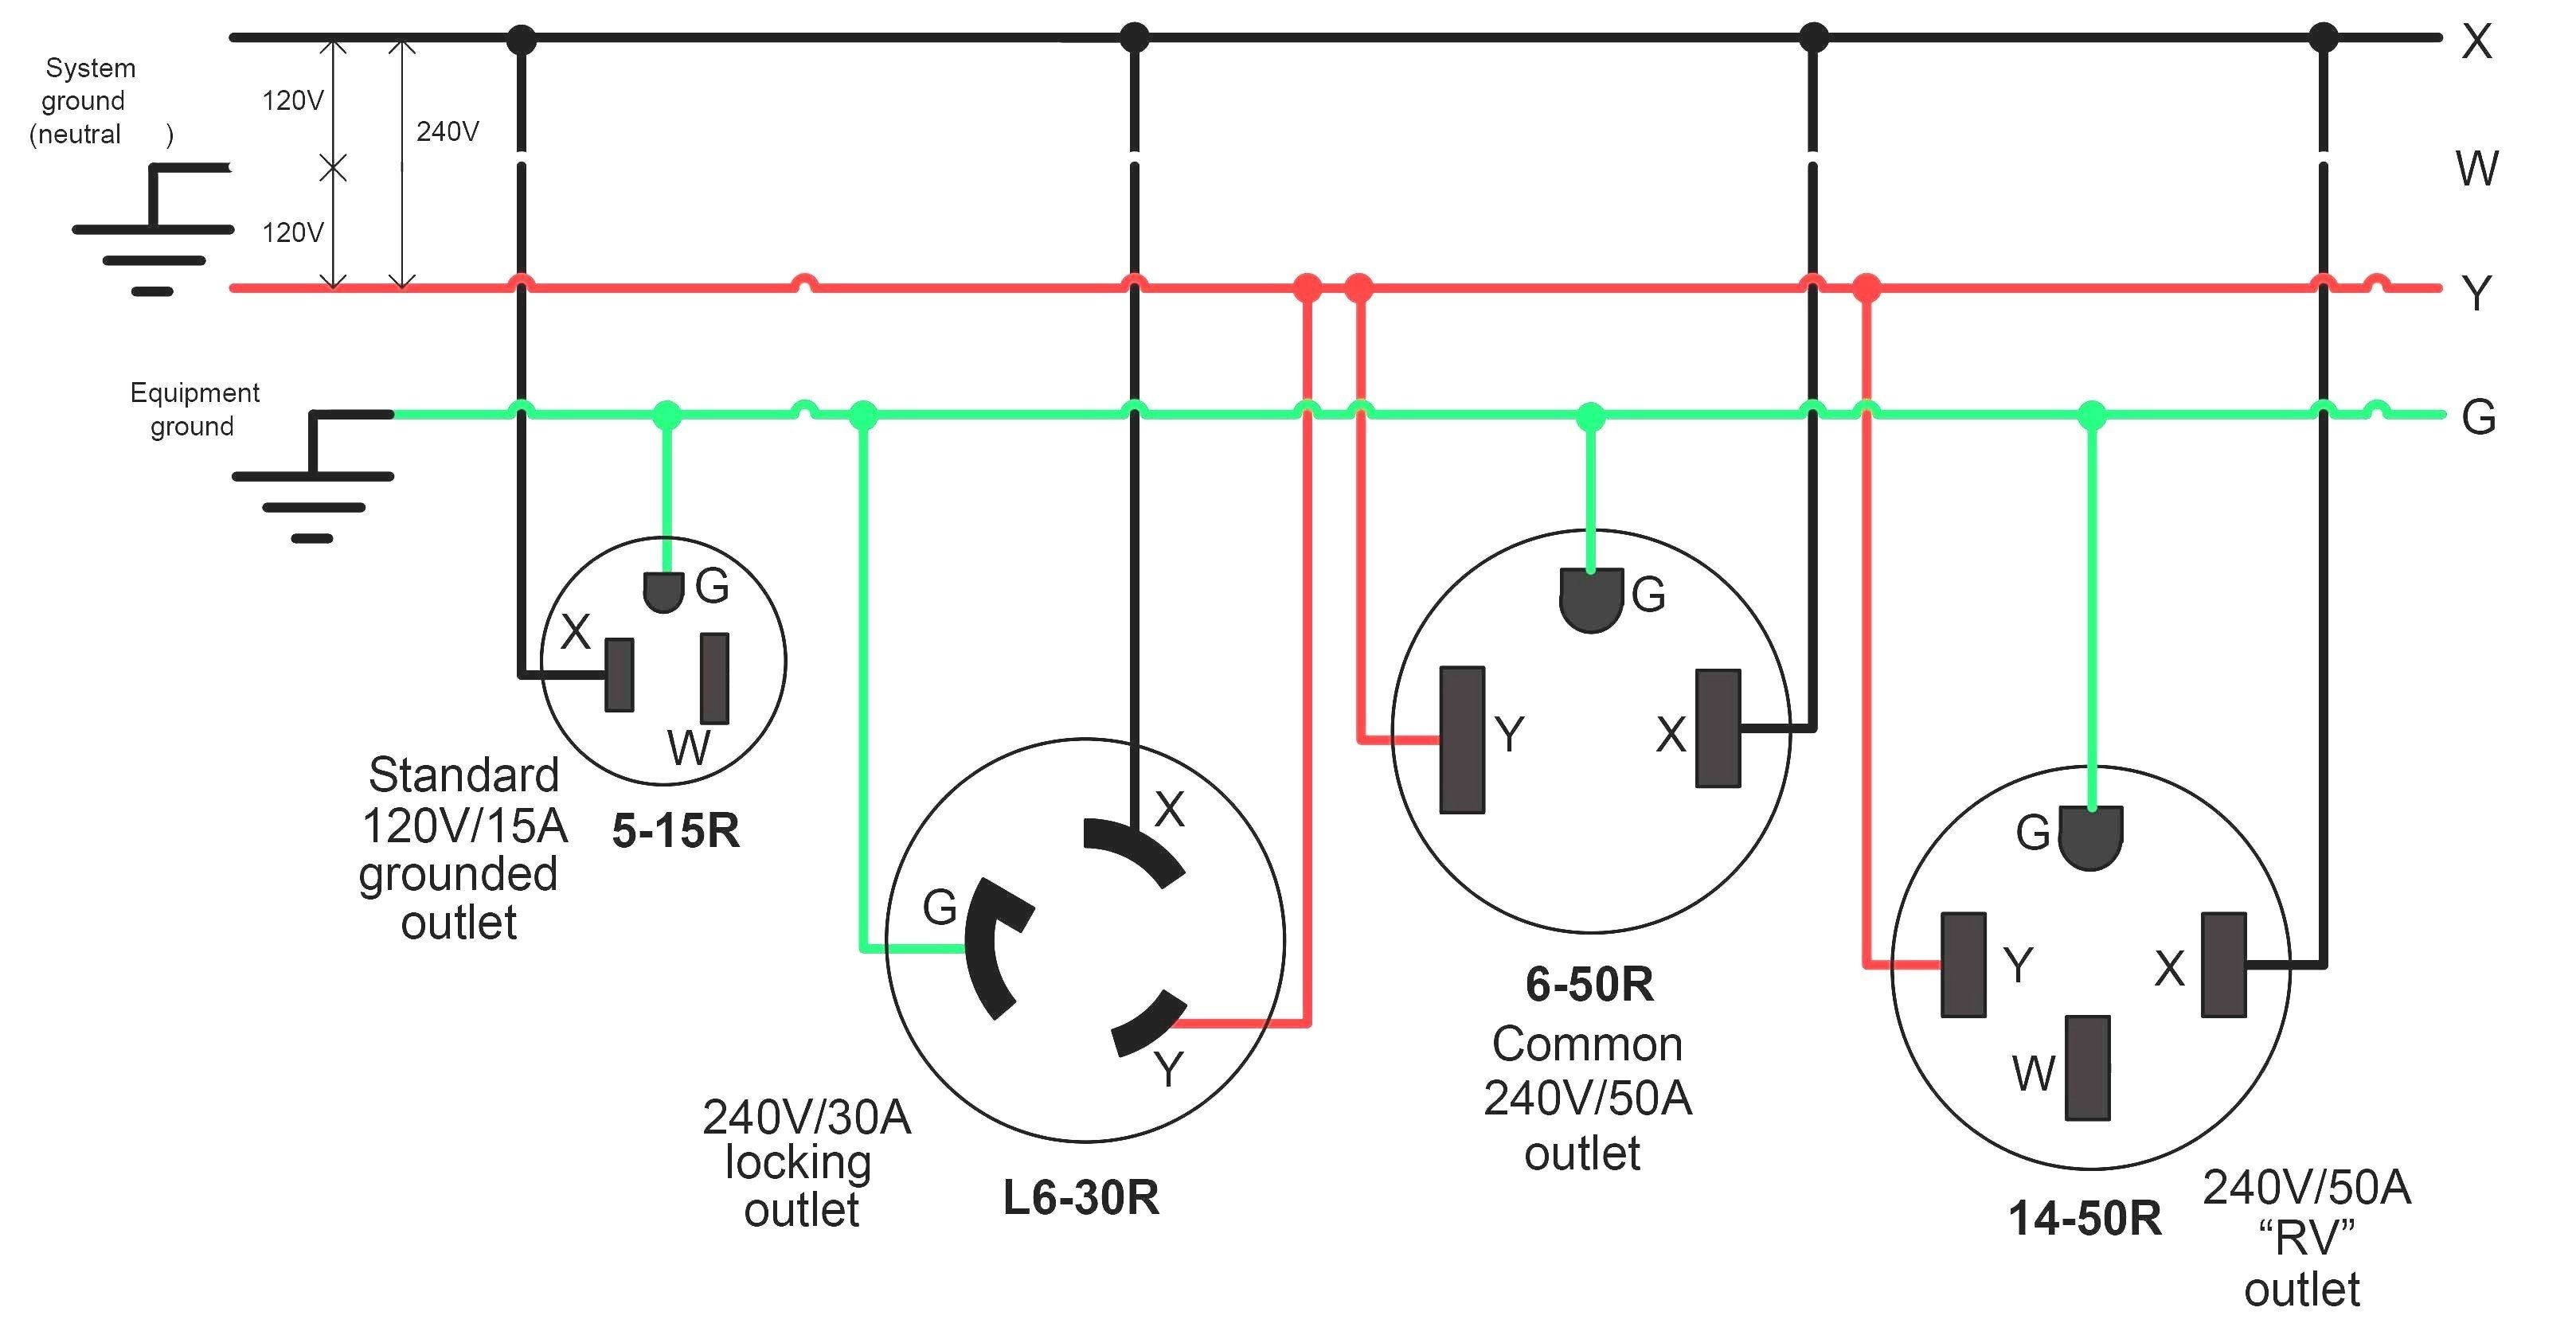 Receptacle Schematic Wiring Color | Wiring Diagram on hopkins 7 blade wiring diagram, 7 wire connector wiring diagram, 7 pin trailer connector diagram, rv electrical wiring diagram, 7 pole trailer plug diagram, 7 pin connector wiring diagram, hopkins 7 pin wiring diagram, 7 rv plug,